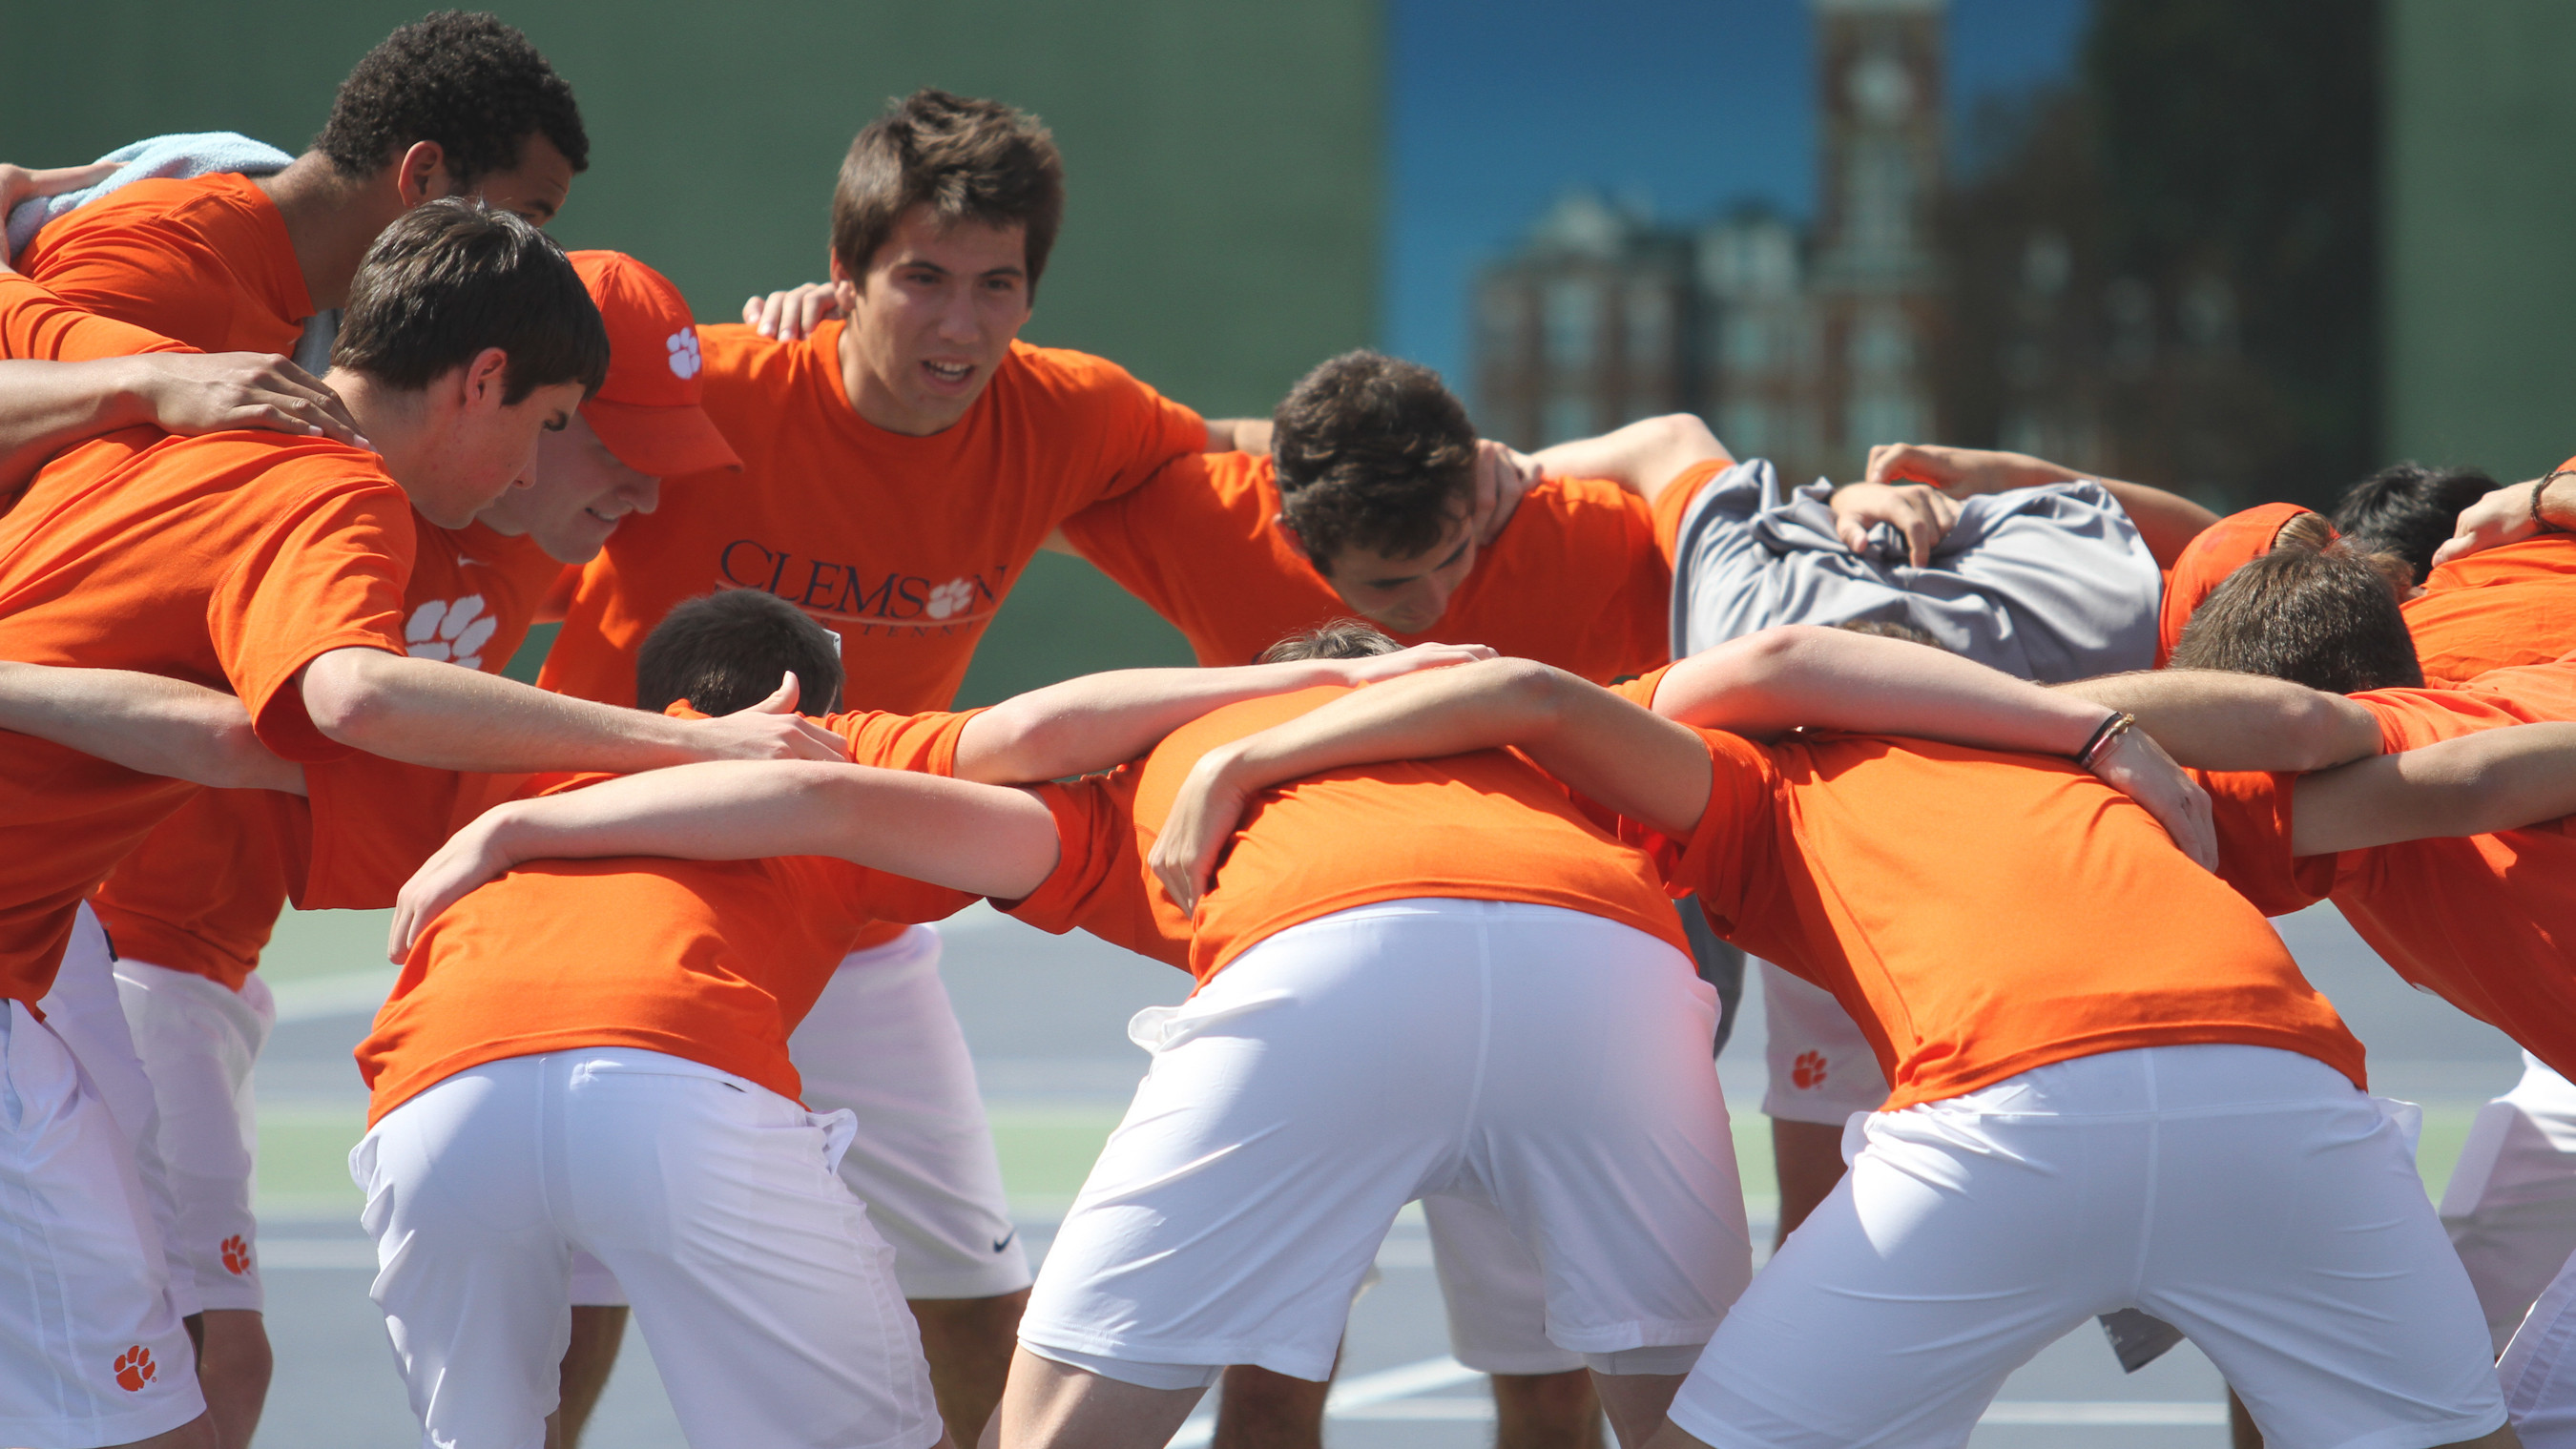 Tigers Move Up to 17th in Latest ITA Poll